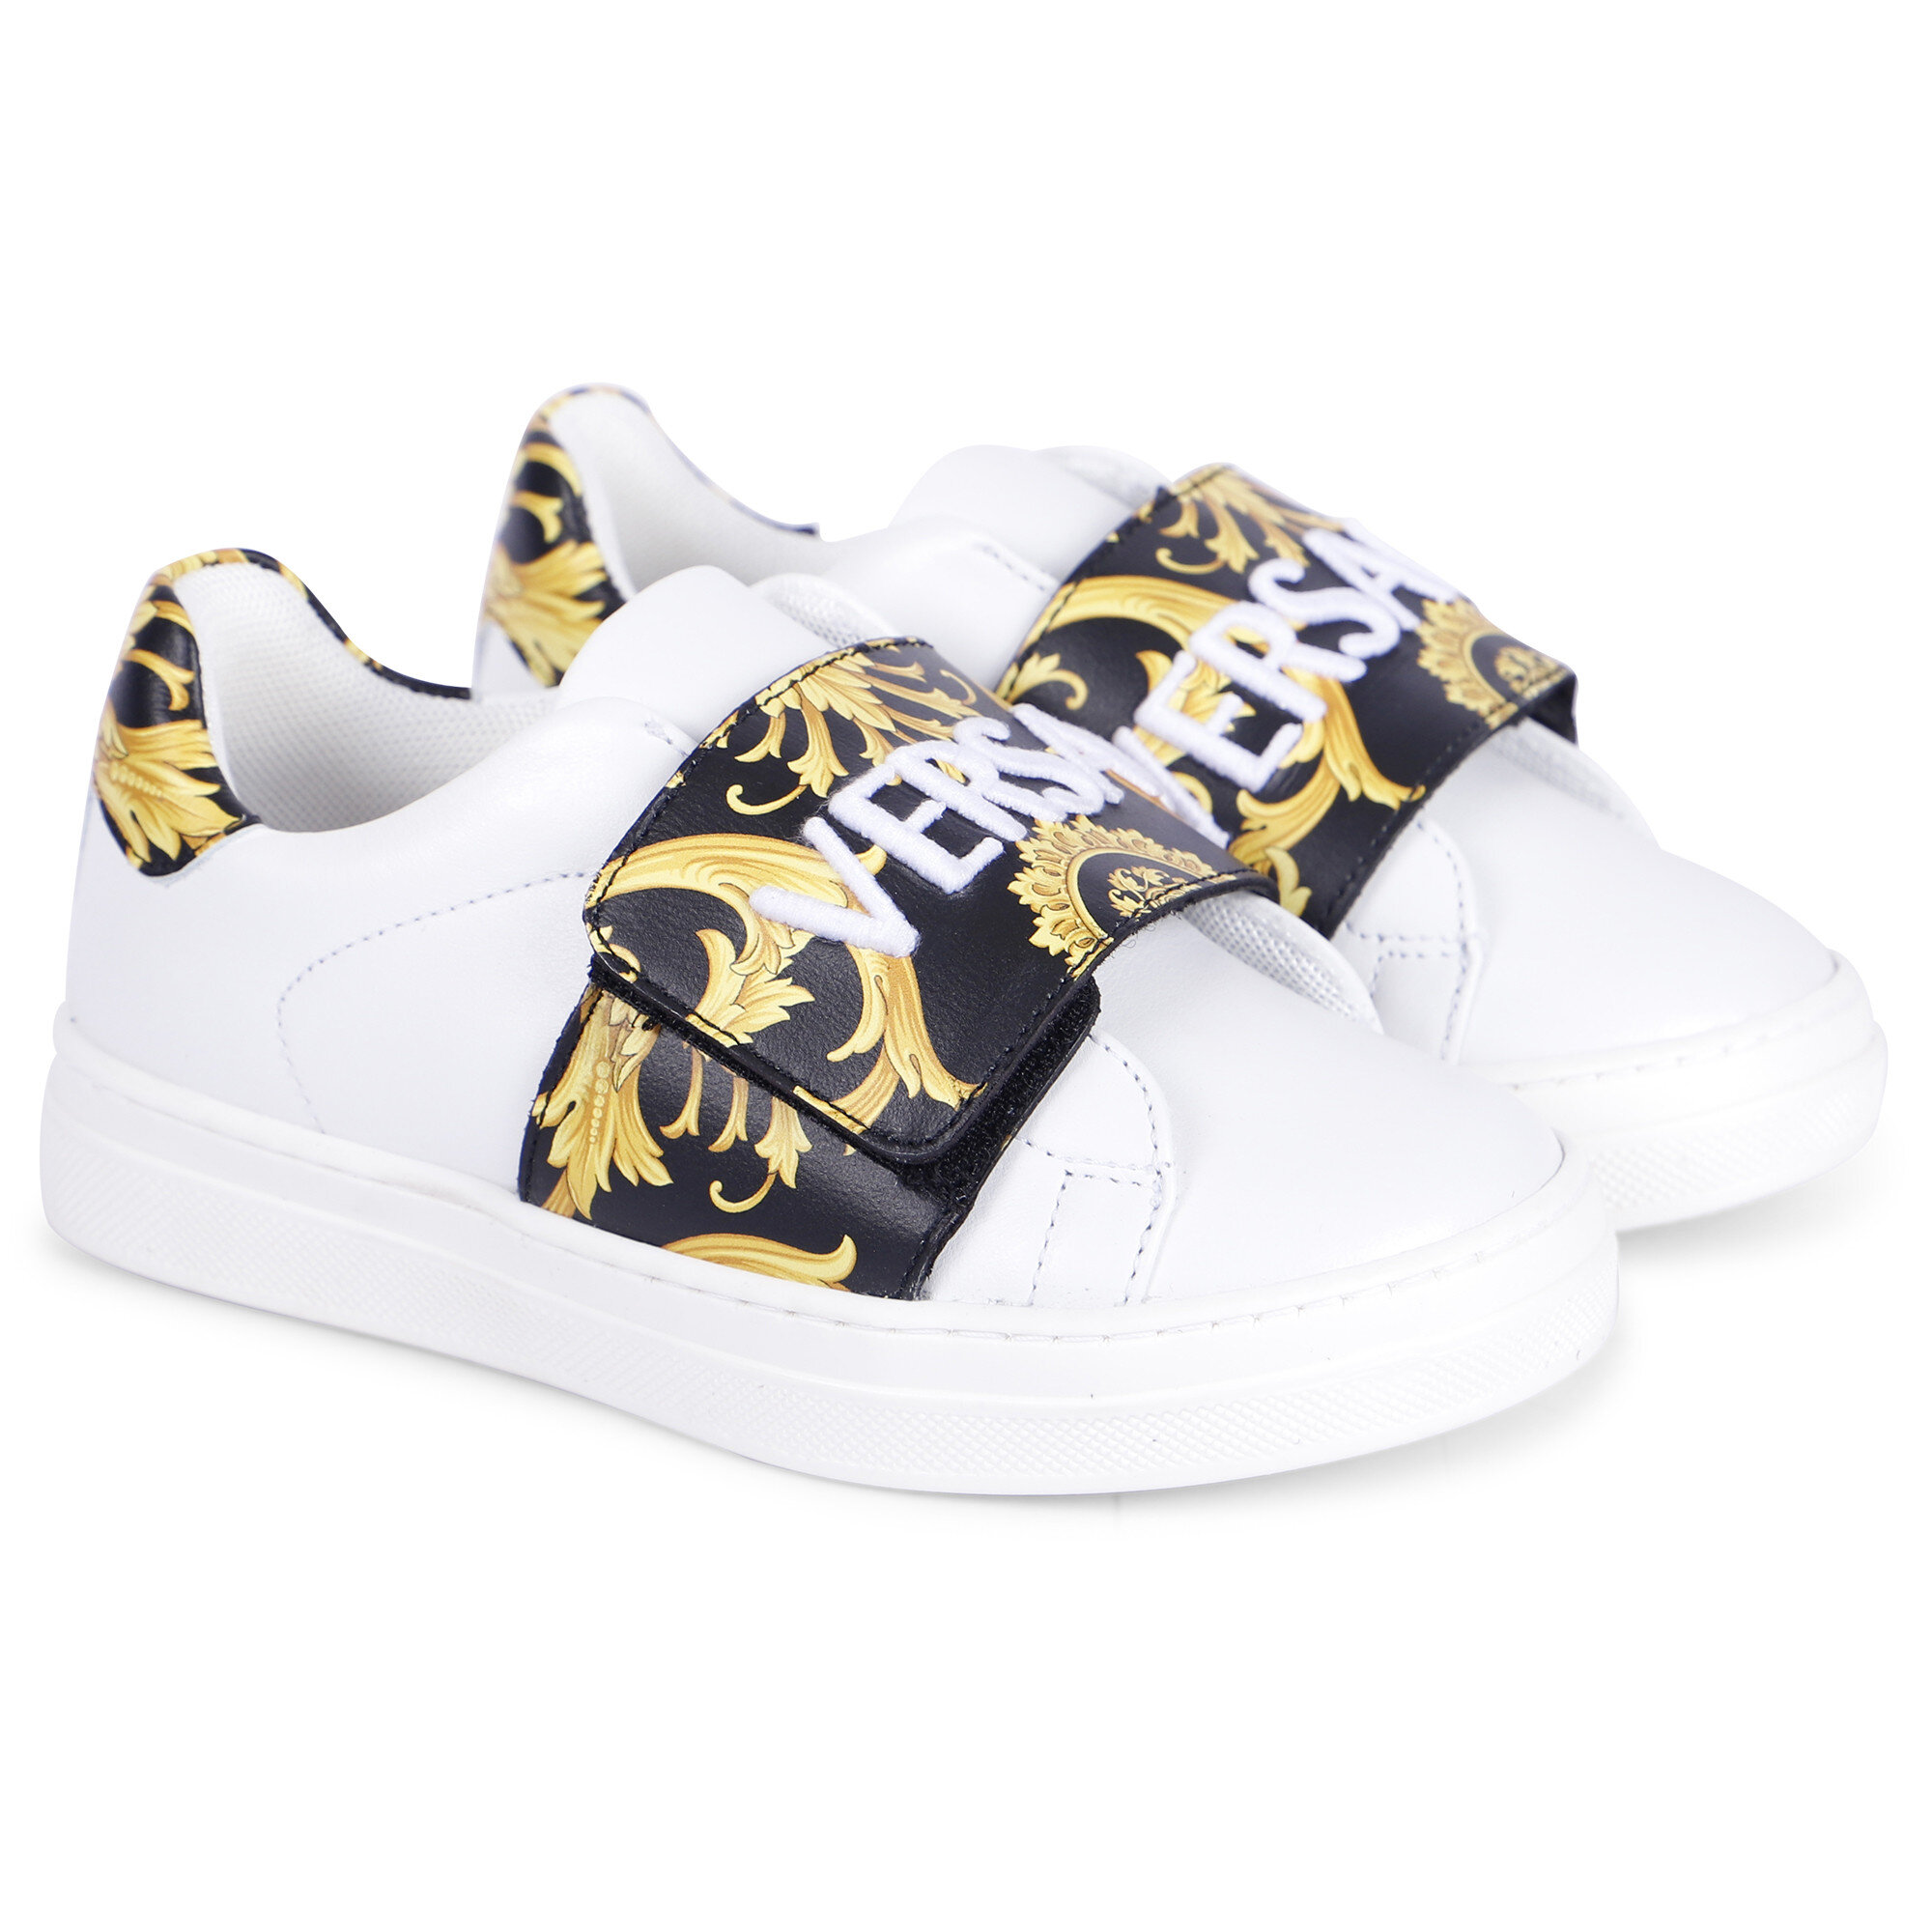 YOUNG VERSACE TRAINERS – lestyle